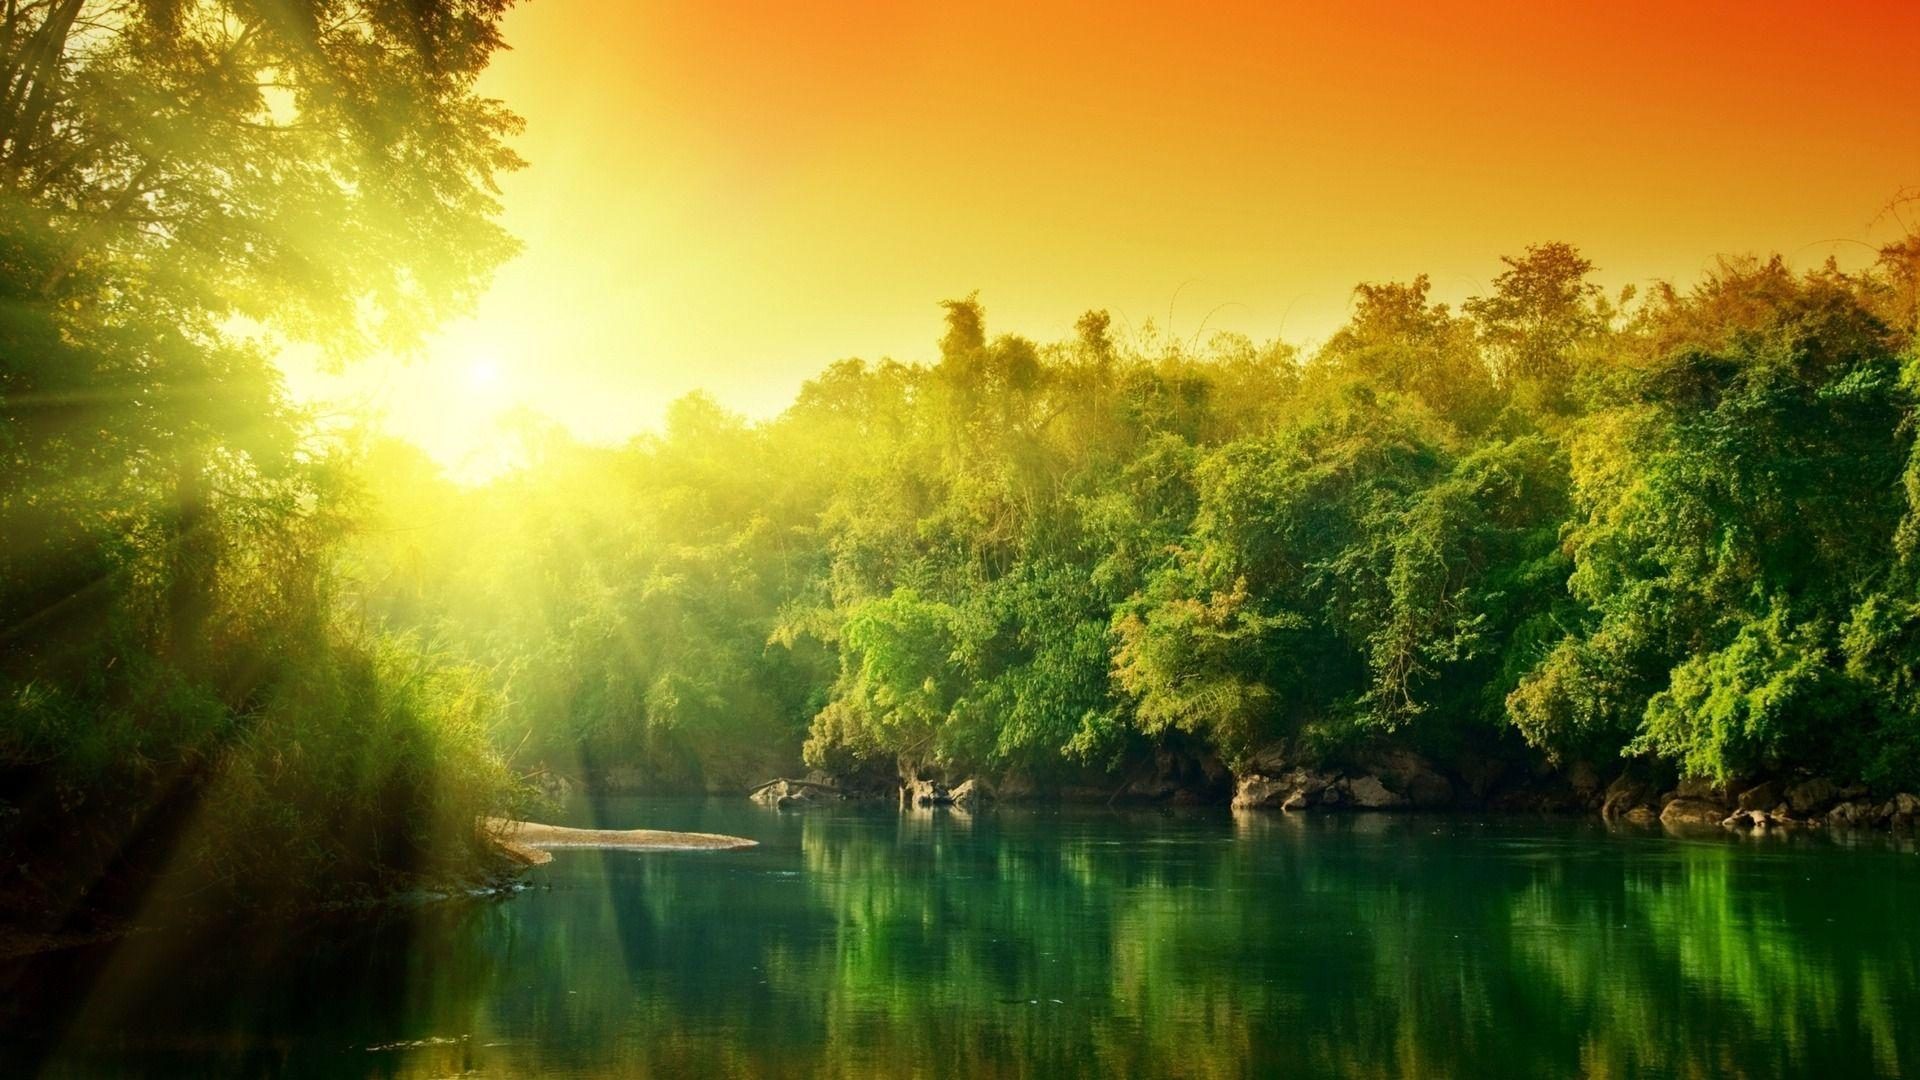 Natural background hd wallpaper free download